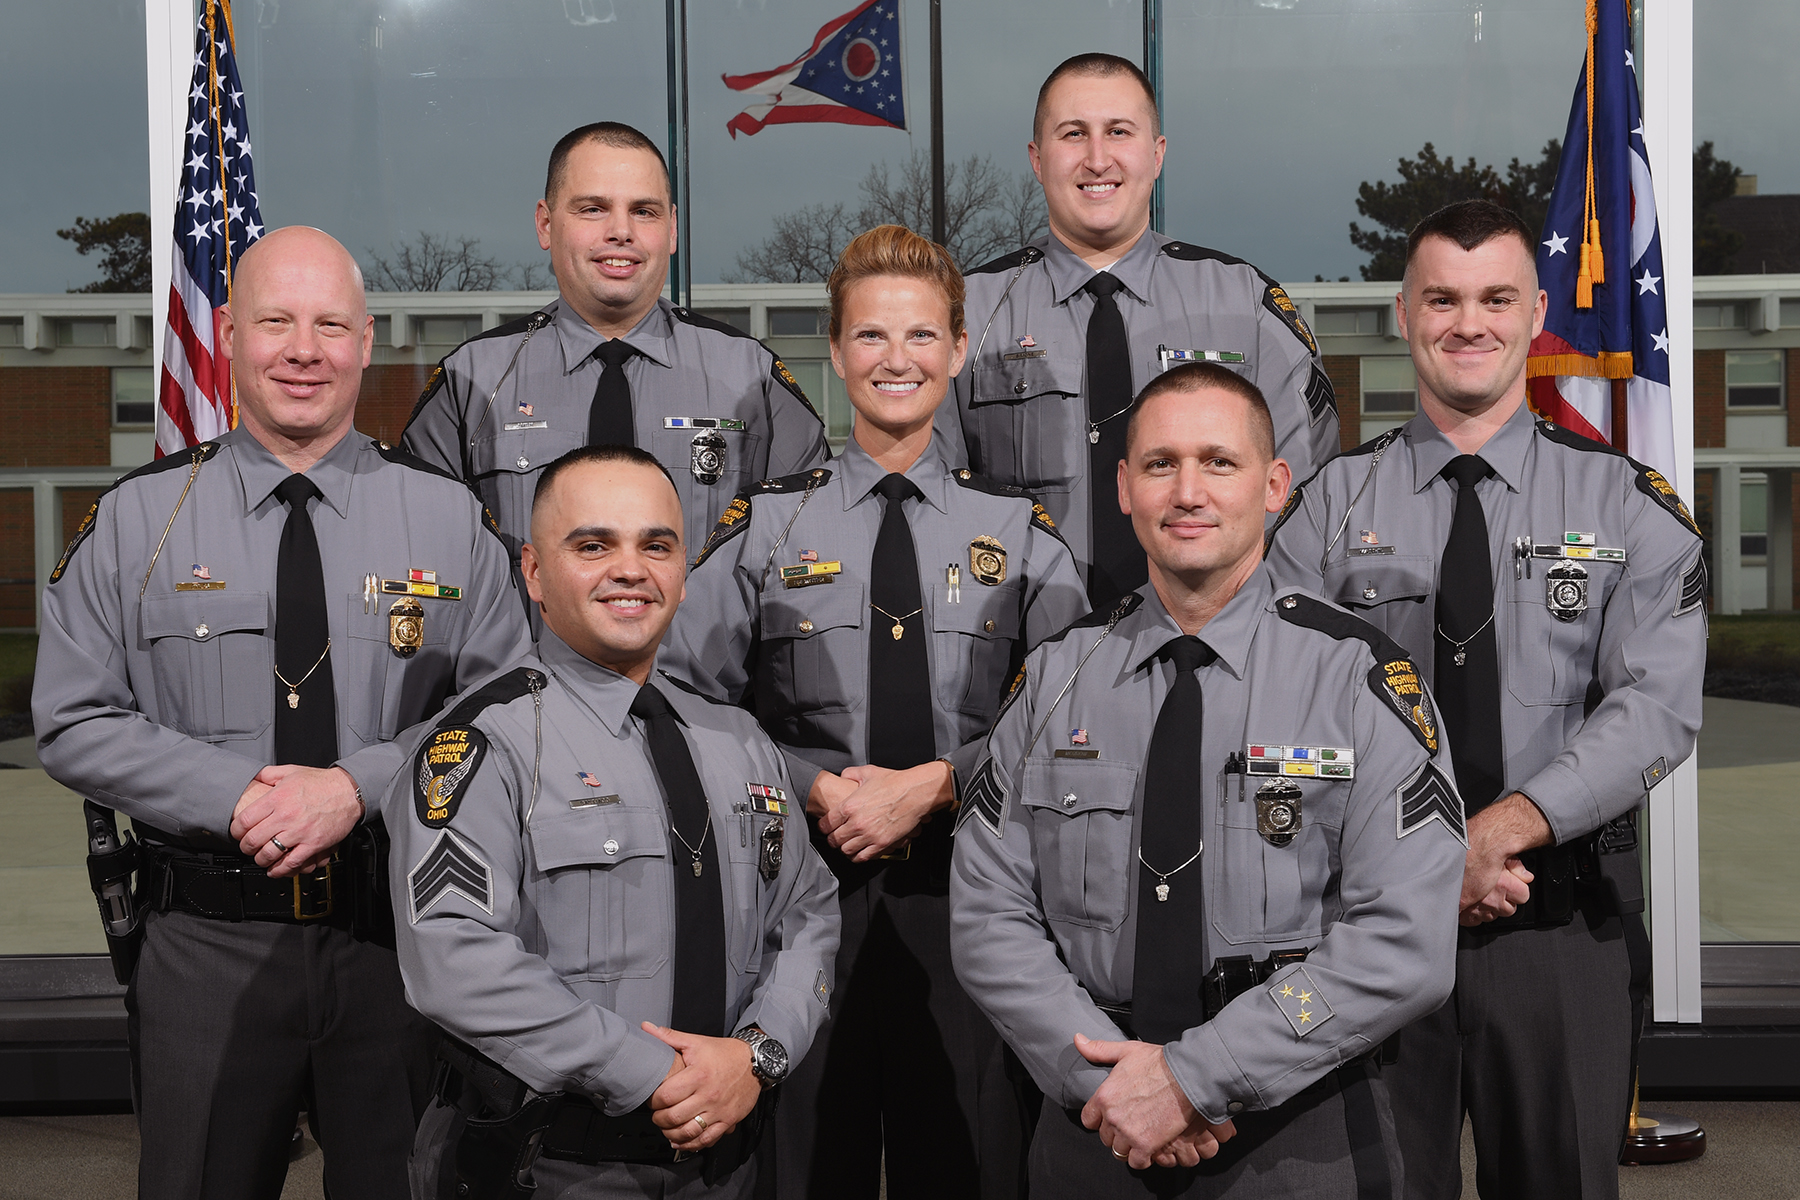 c11a51f4eb3 Please join us in congratulating the newly promoted members of the Ohio  State Highway Patrol. Front row (L-R): Sergeant Juan 'Ray' Santiago,  Sergeant Shane ...